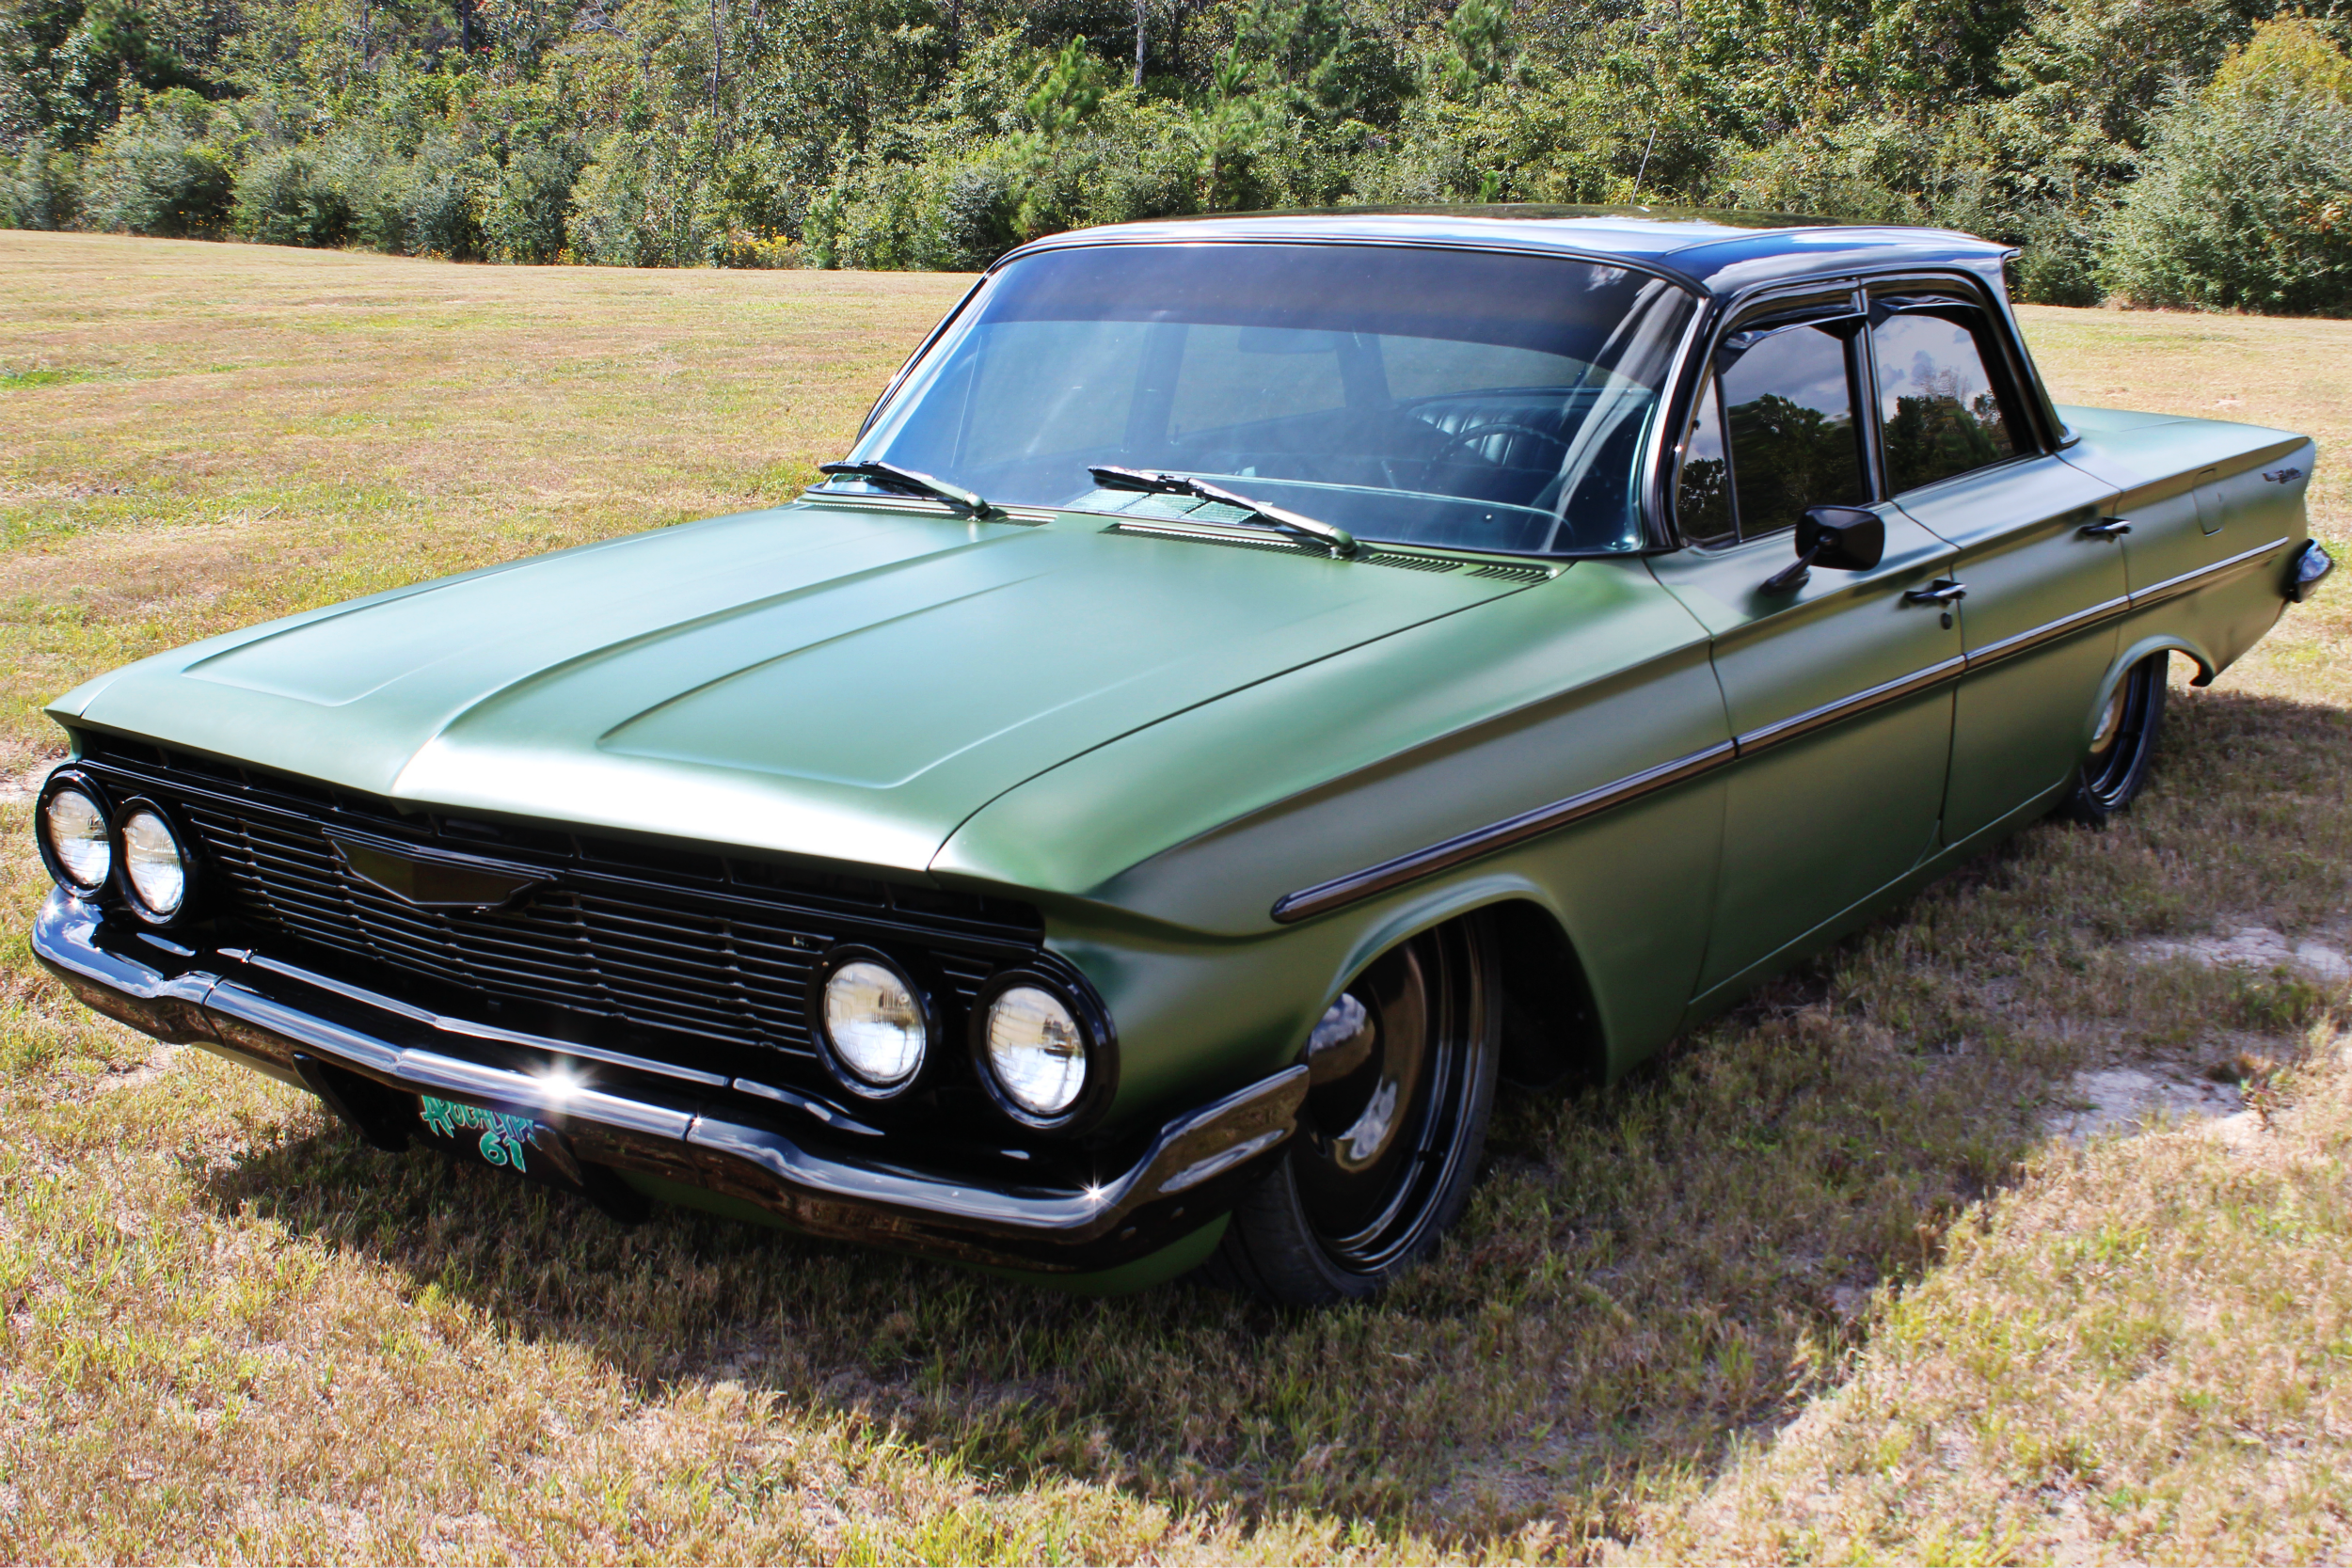 Army Green Low Gloss Single Stage 1 5 Gallon Kit Custom Paint For Your Automobile Or Motorcycle At Prices